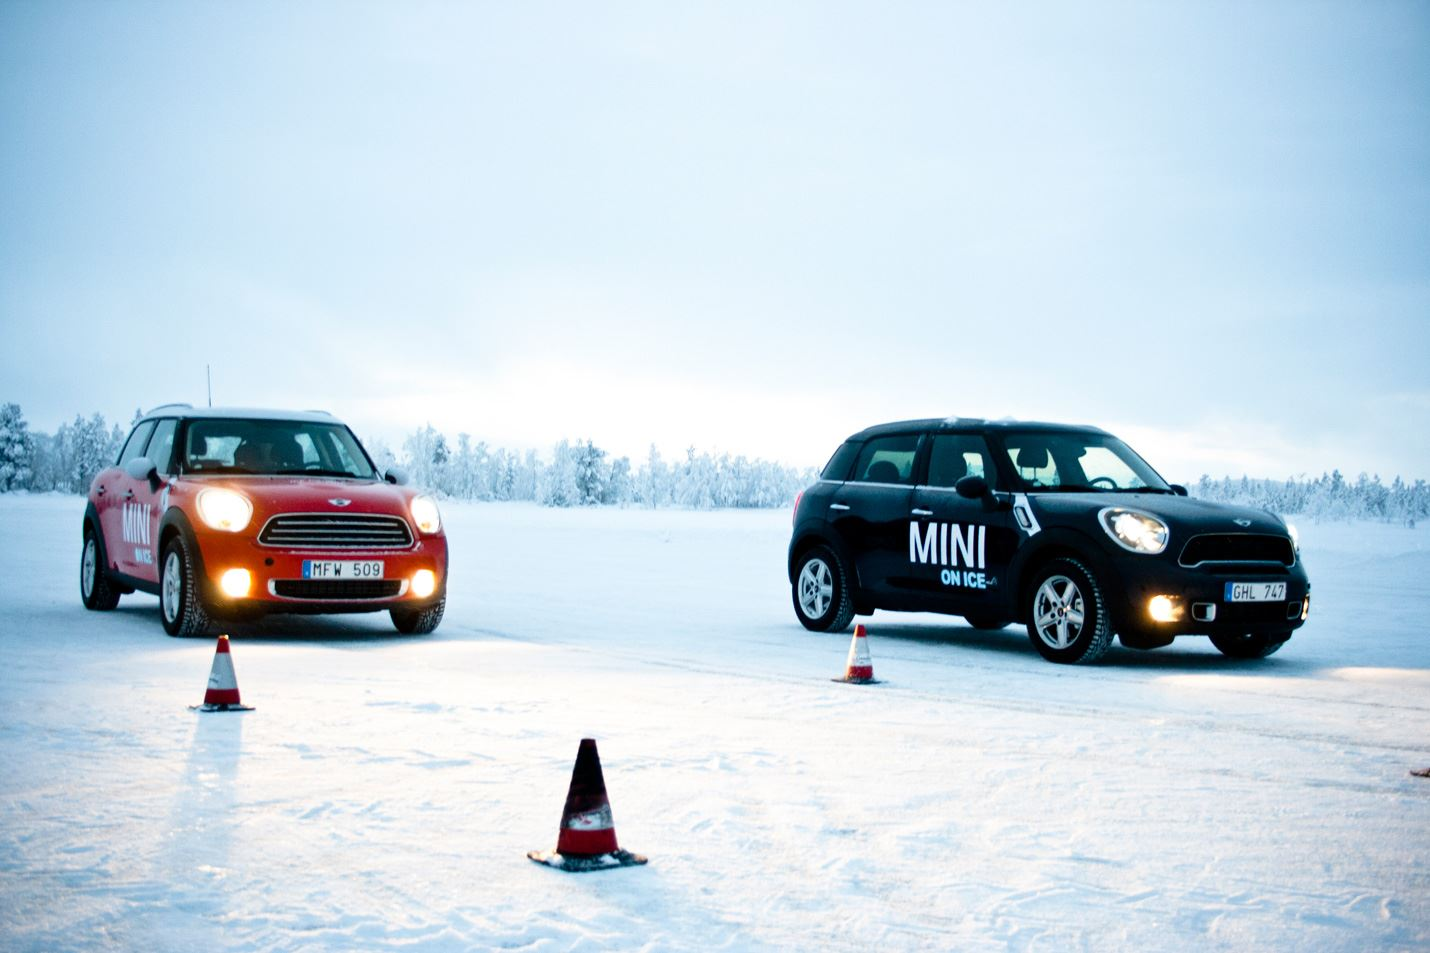 Martin Smedsén, Driving adventures: Ice driving